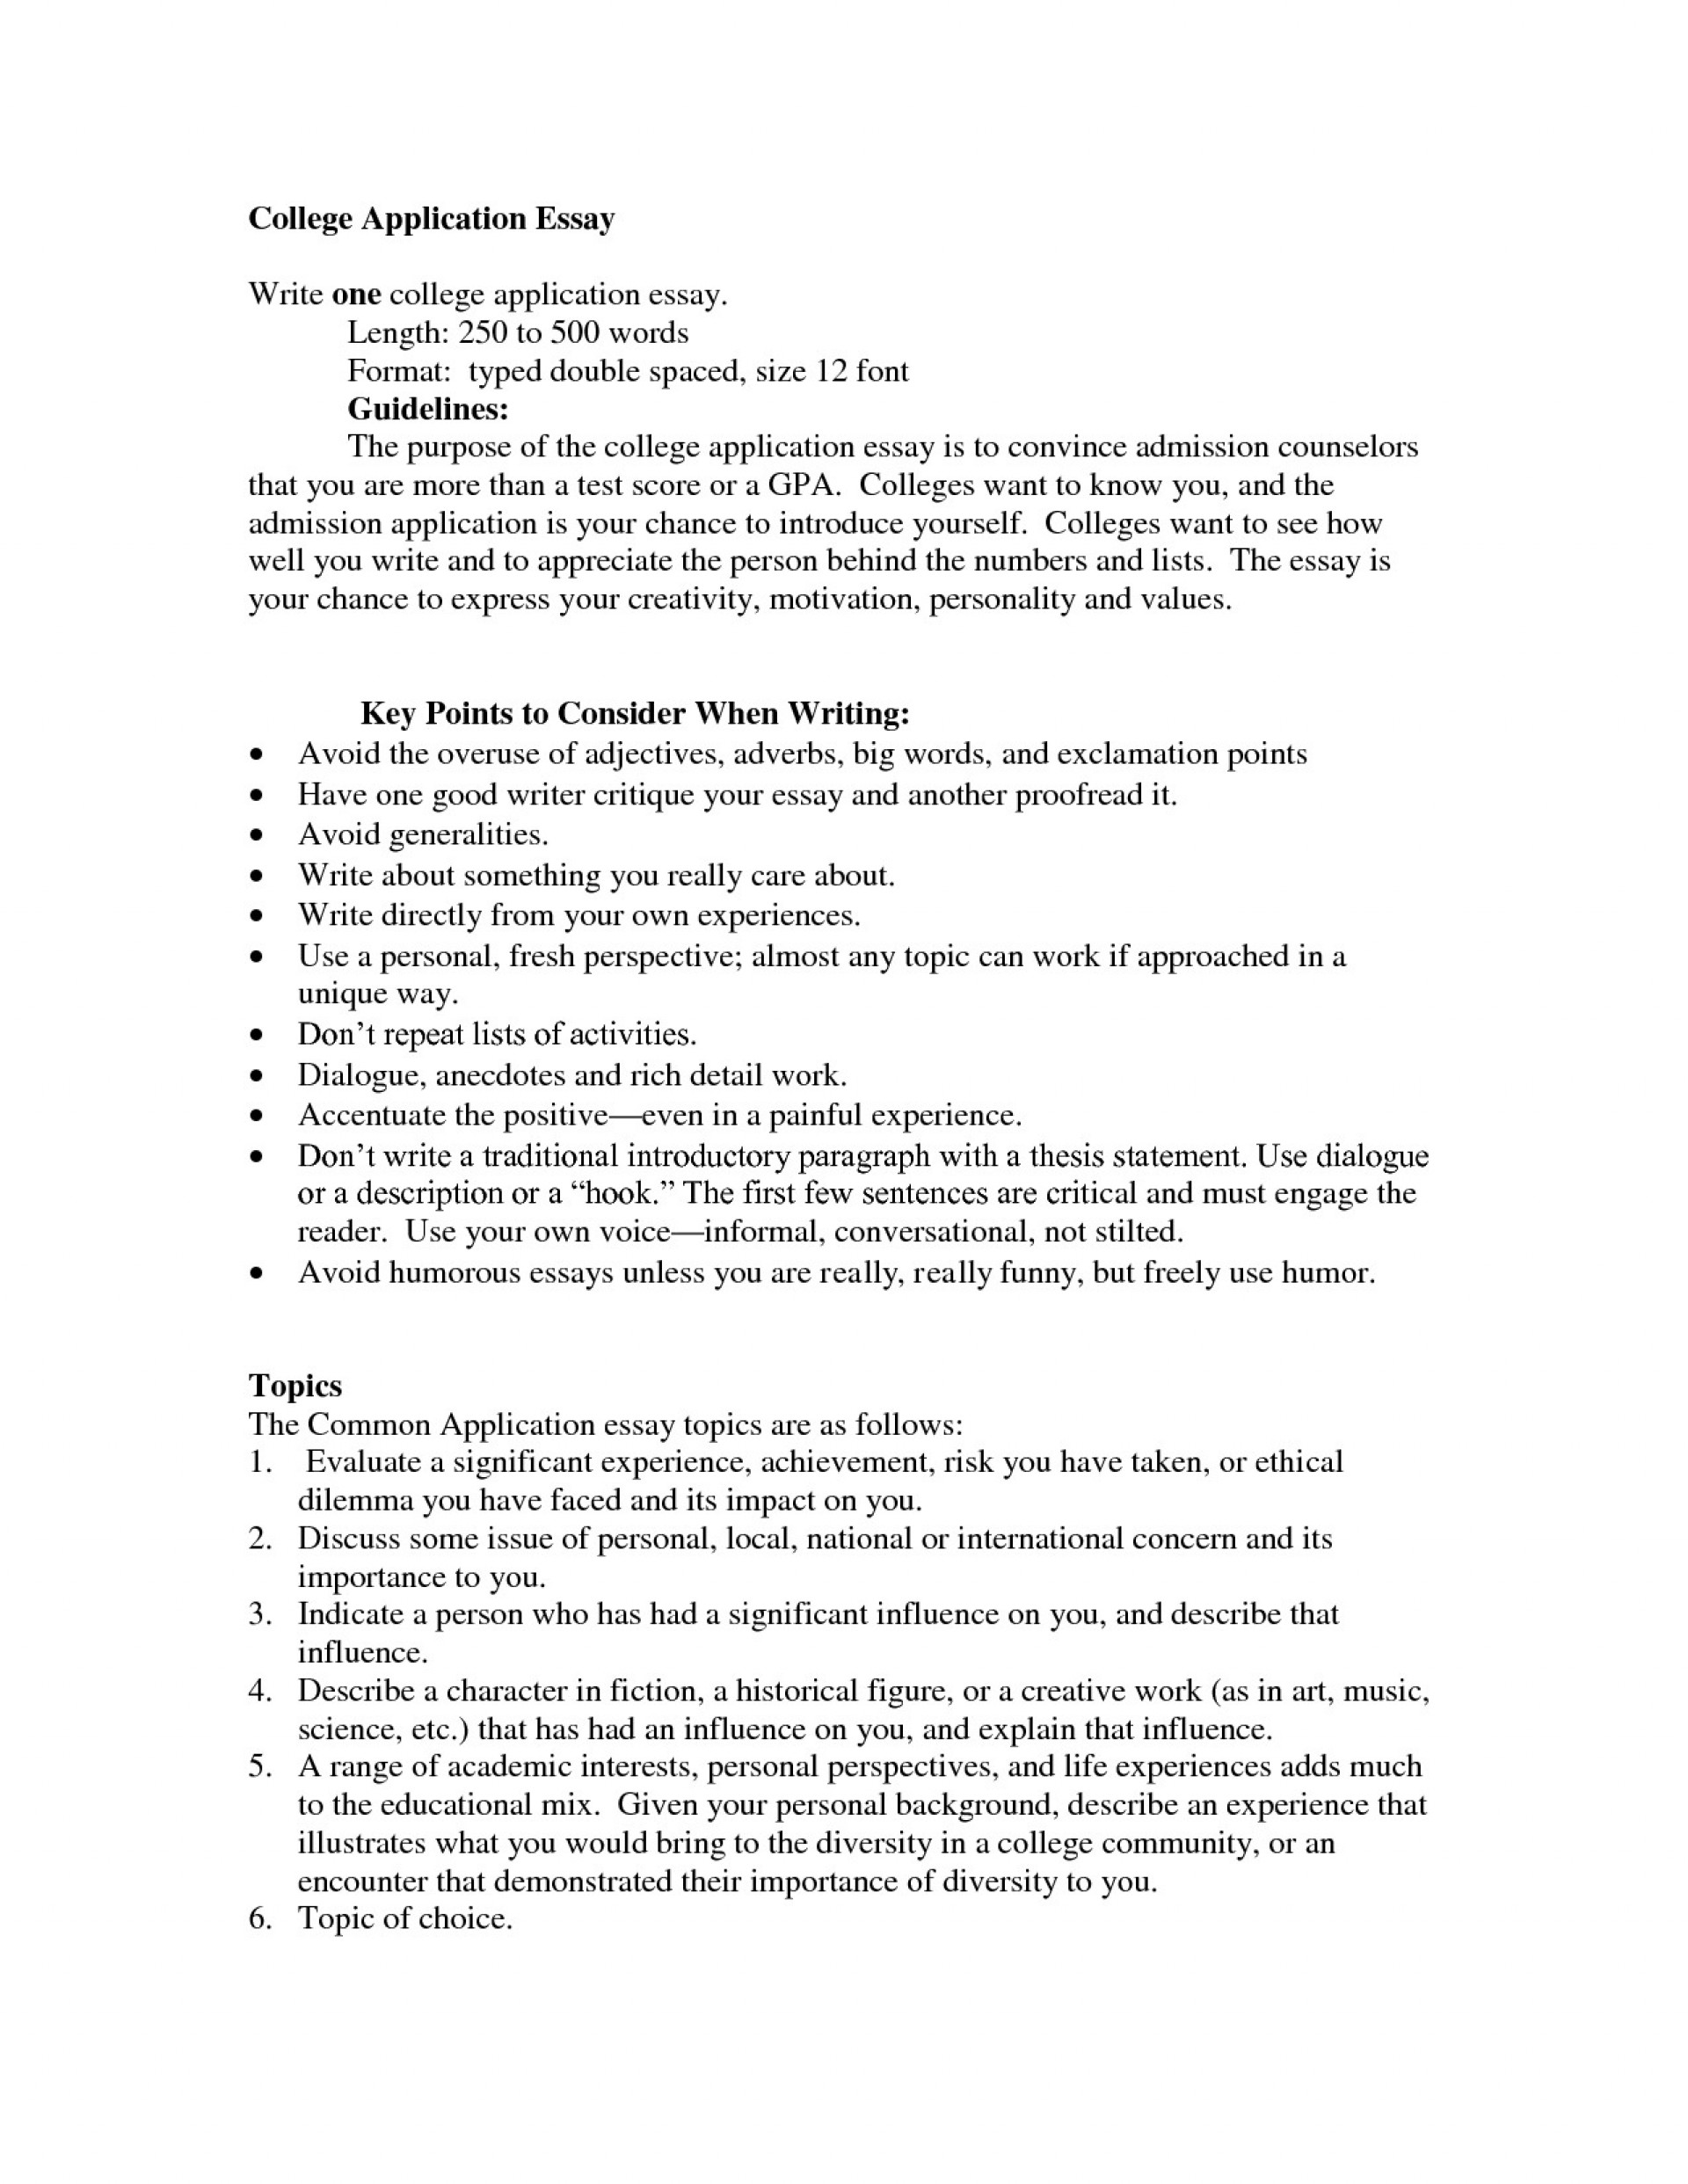 015 College Application Essay Outline Professional Writing Website Throughout Format Writer Com Outstanding My Writer.com Pro Reviews Comparative 1920